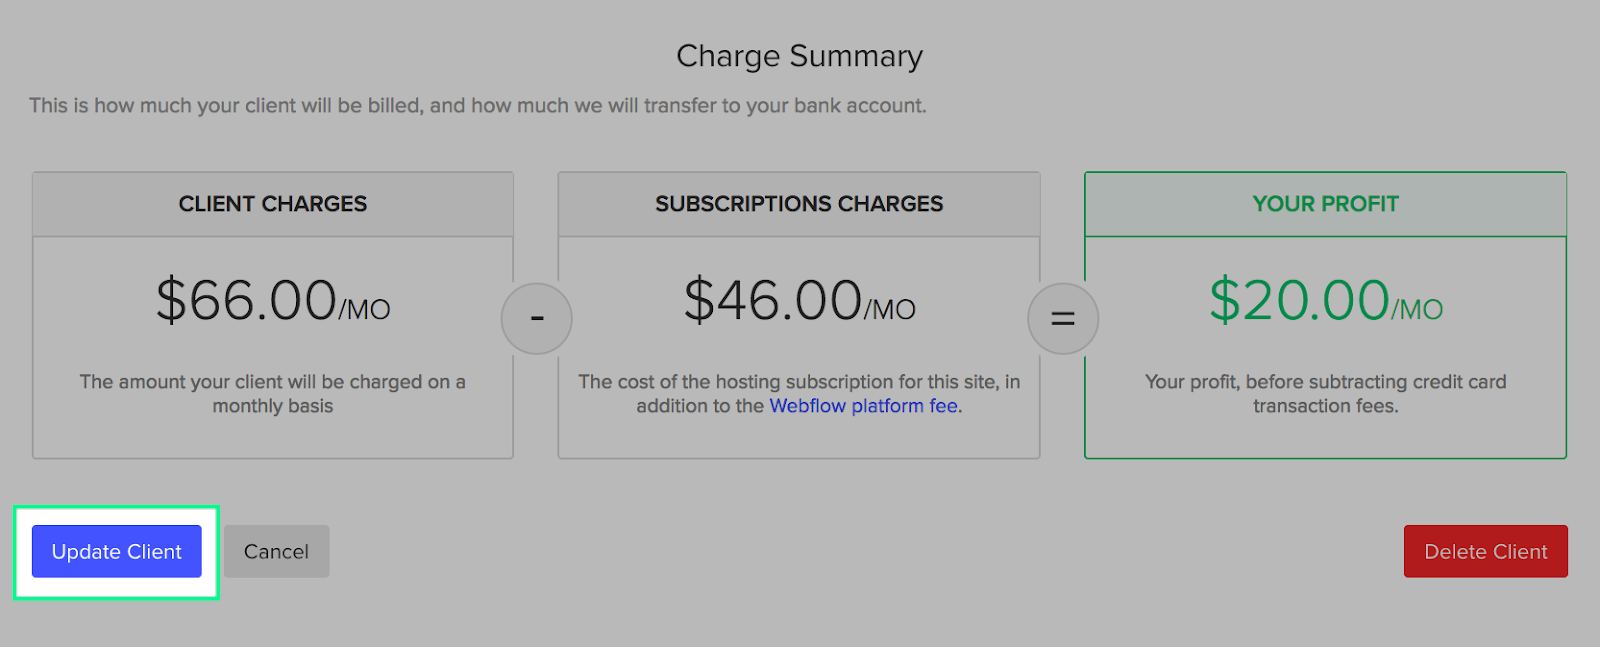 Update client to save your changes